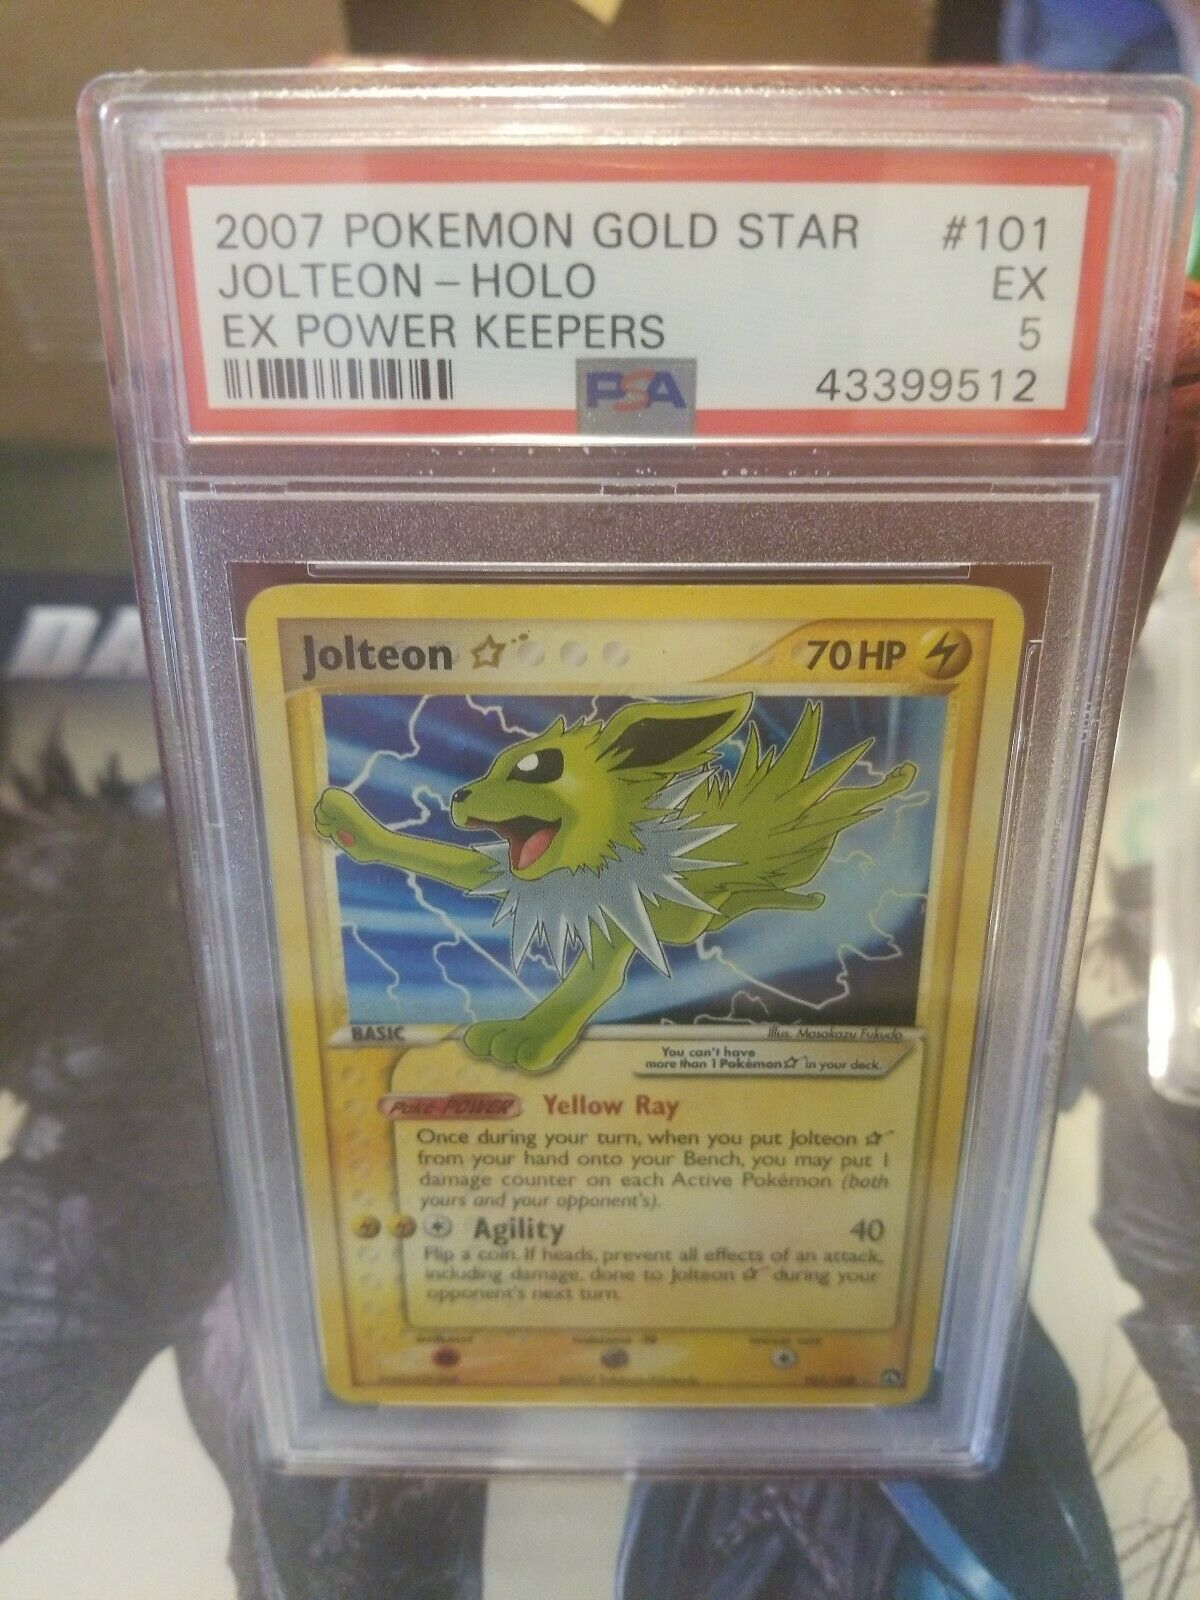 Pokemon Jolteon gold Star - PSA 5 MINT - EX Power Keepers Holo 101 108